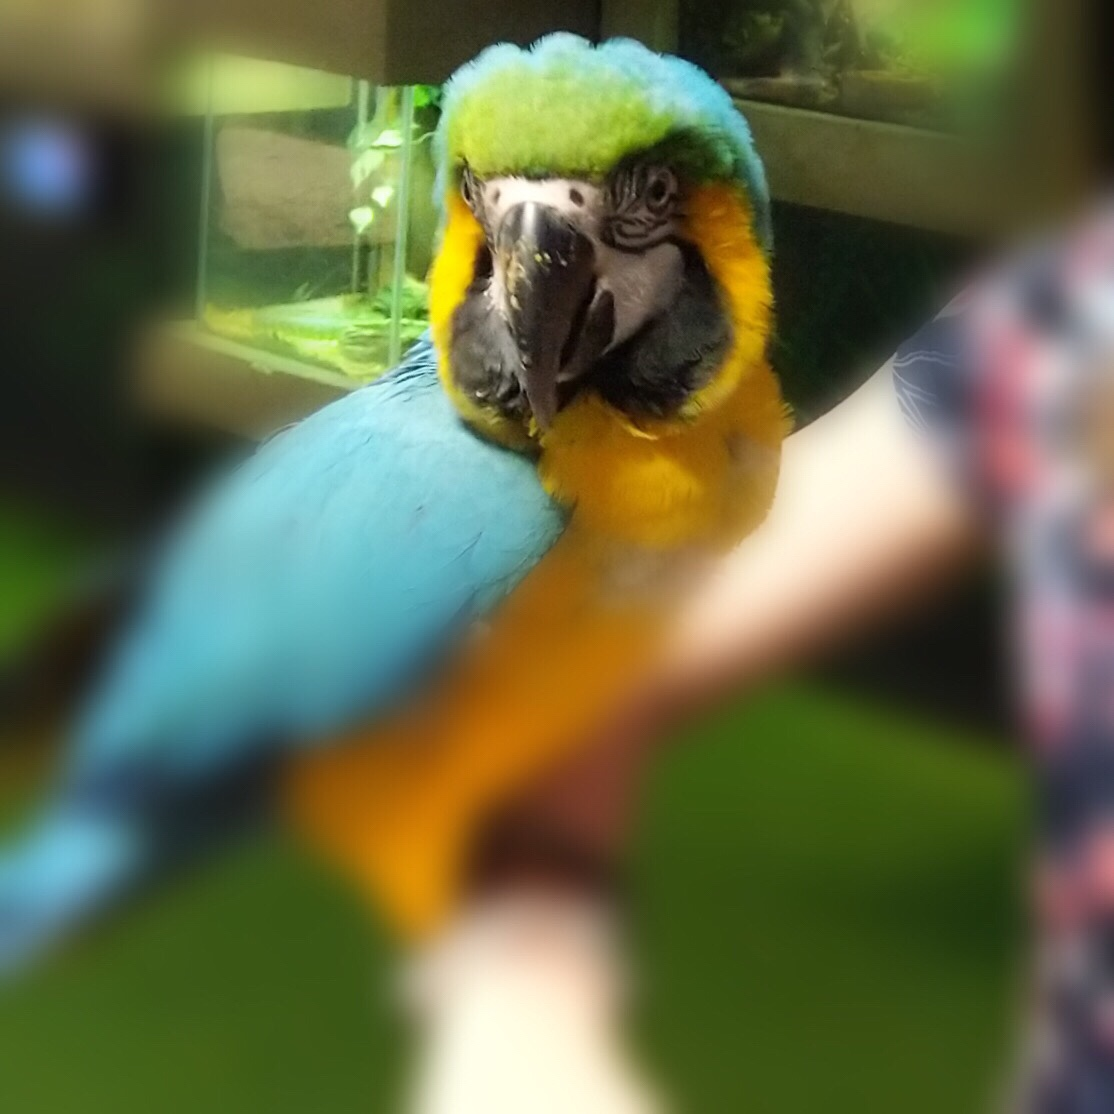 A colorful parrot on Veronica's arm